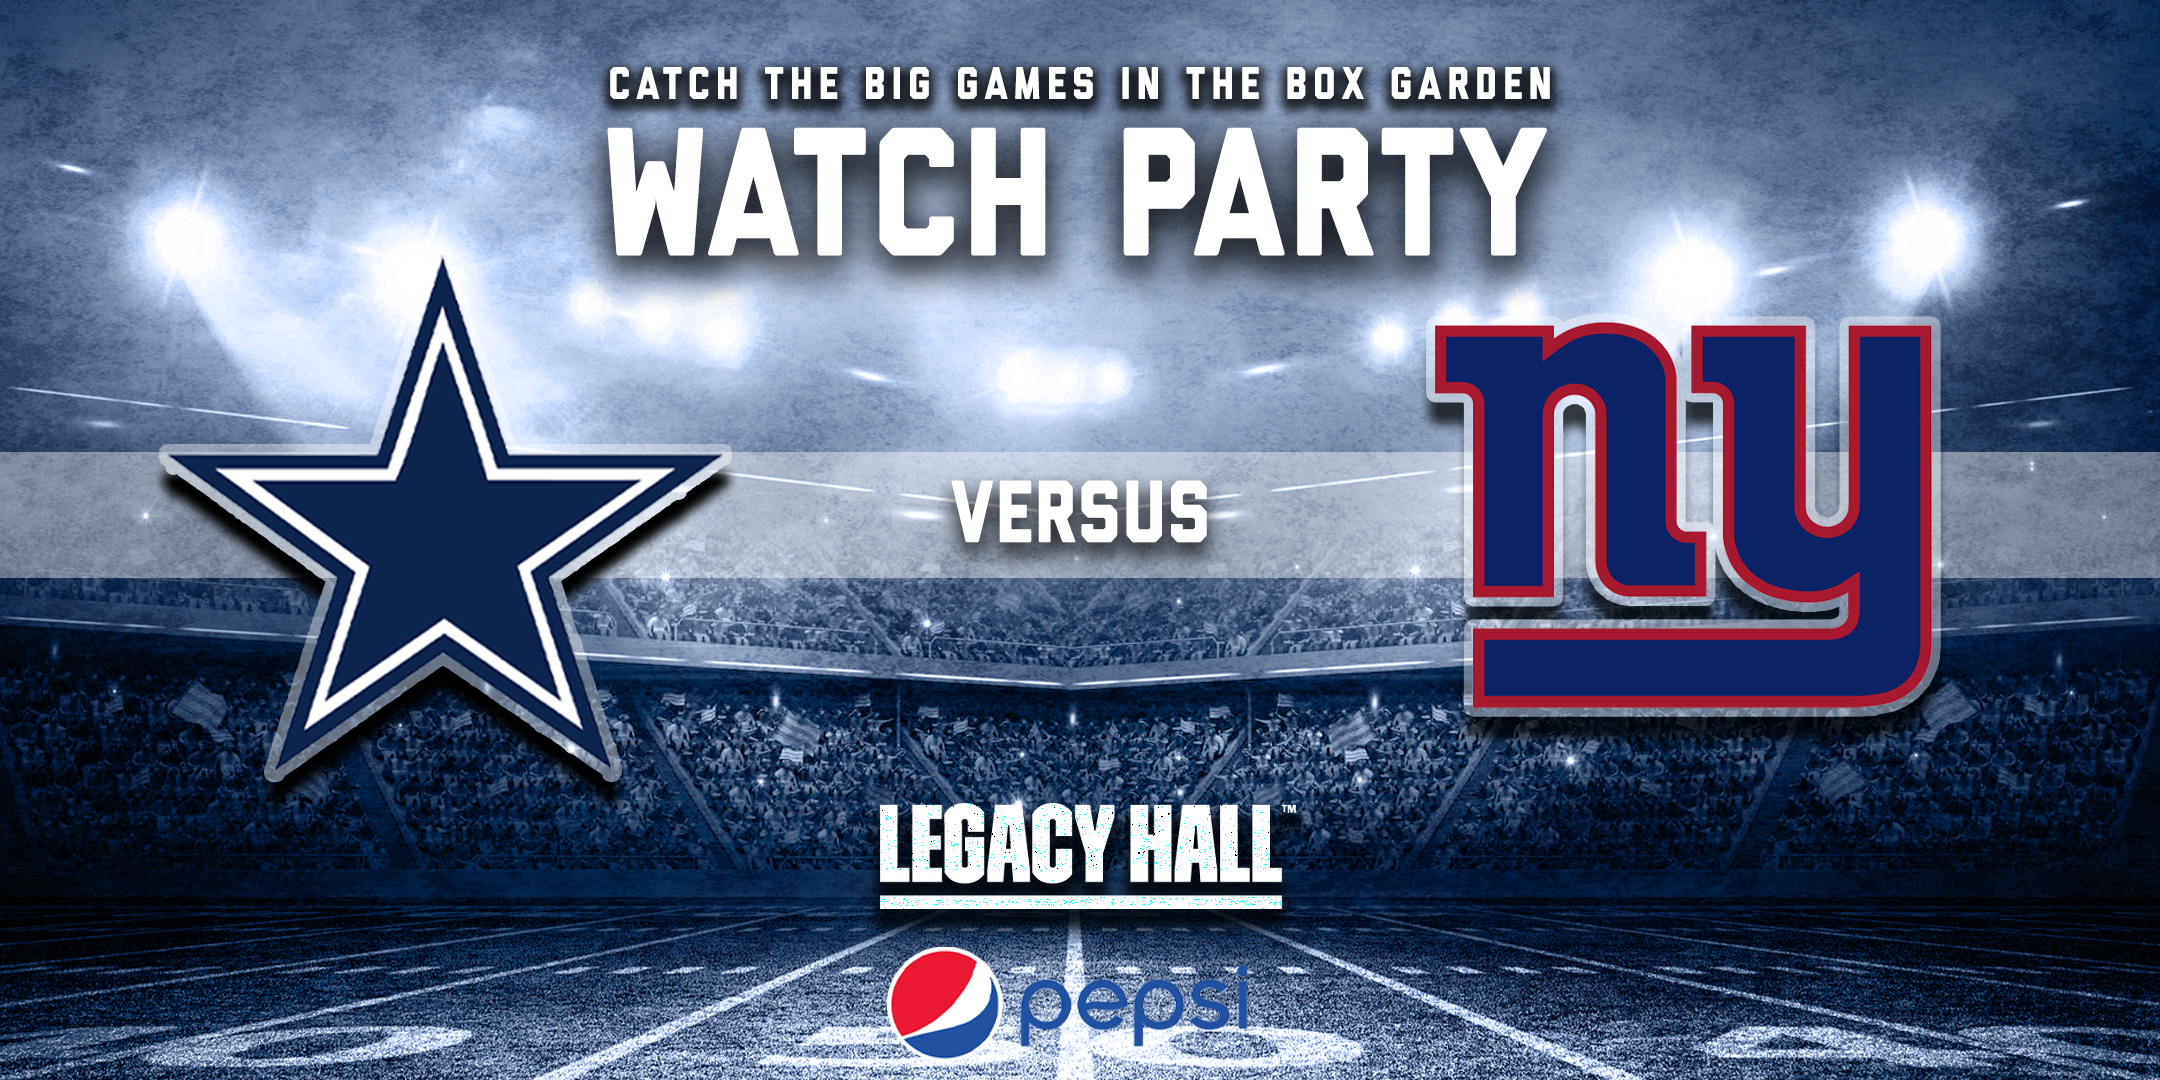 Promo image of Cowboys vs. Giants Watch Party